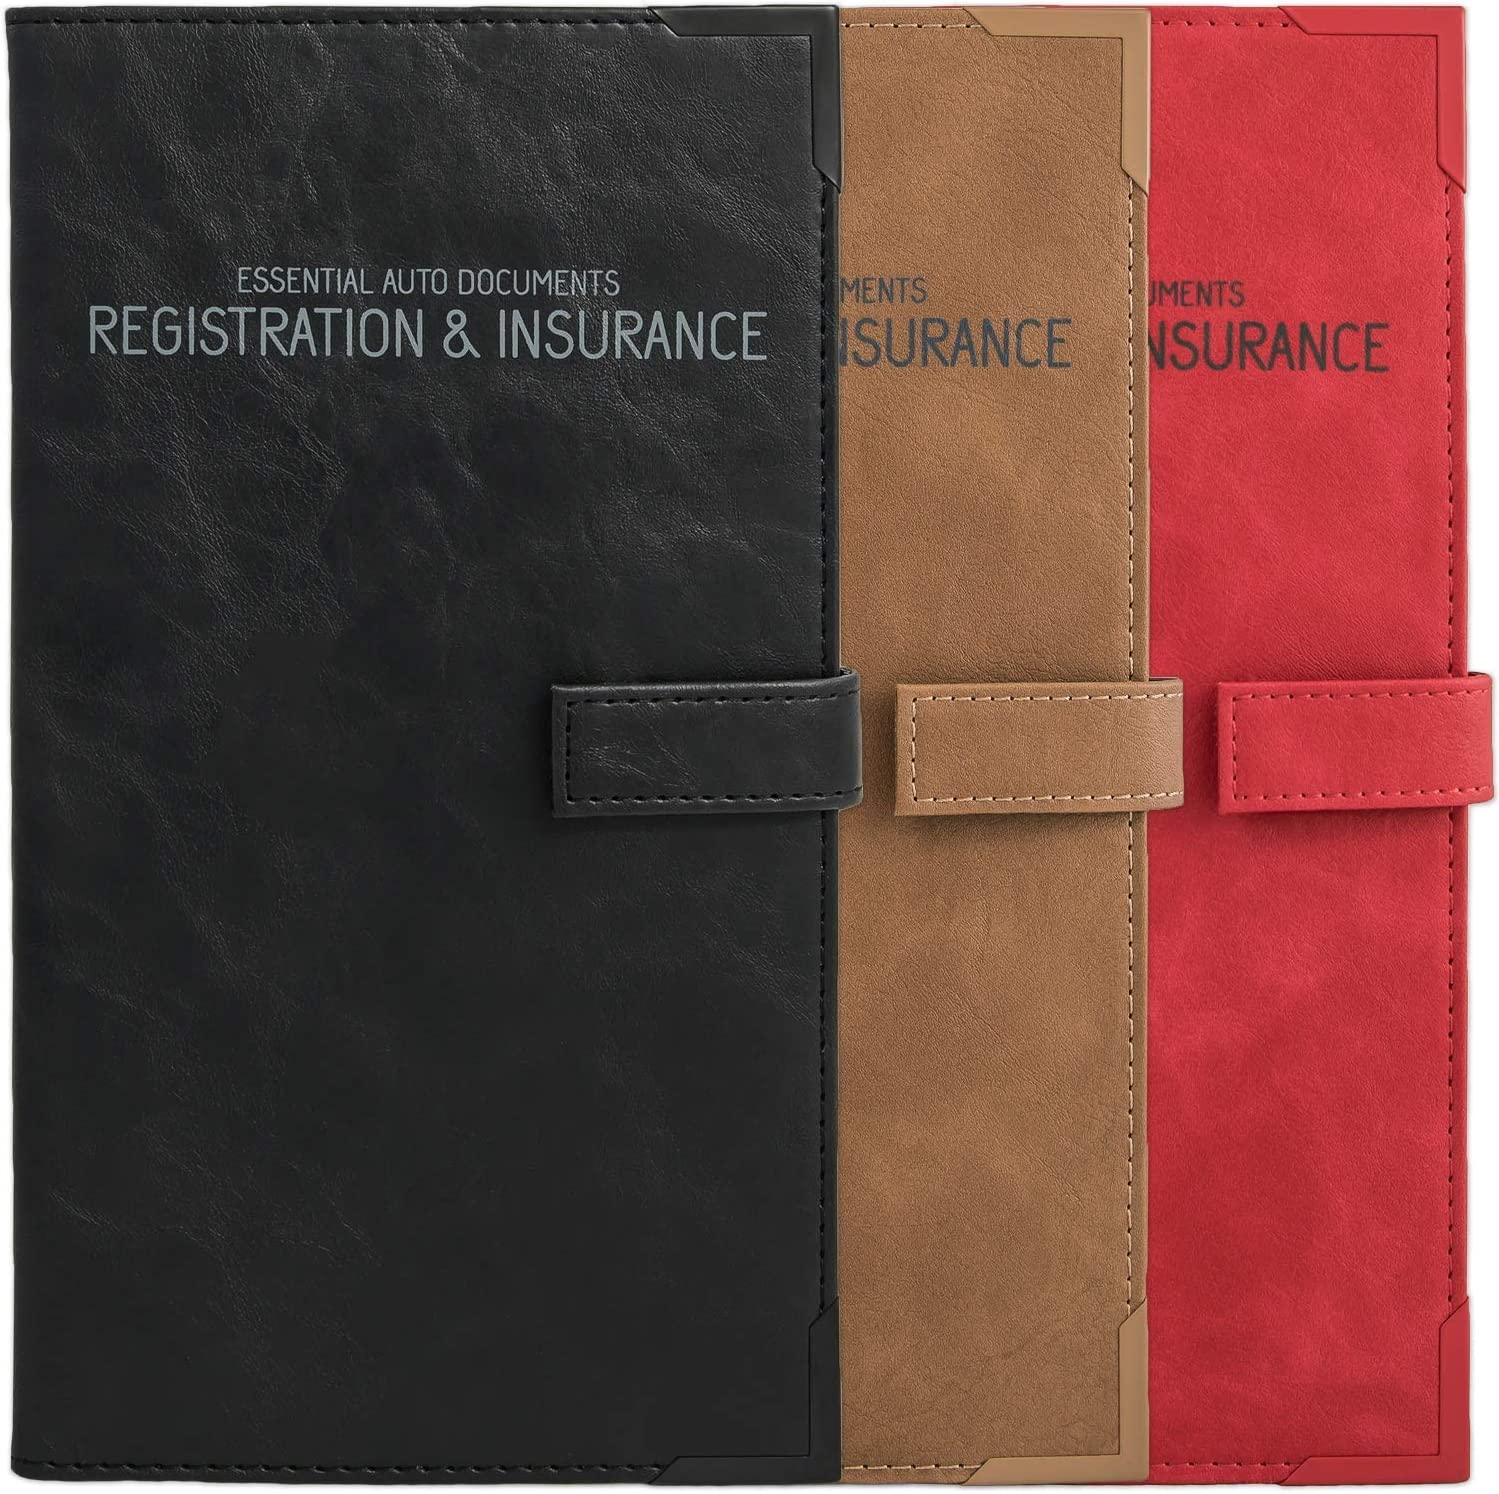 Auto Insurance and Registration Card Vehicle Box Glove Sale Max 78% OFF Holder -